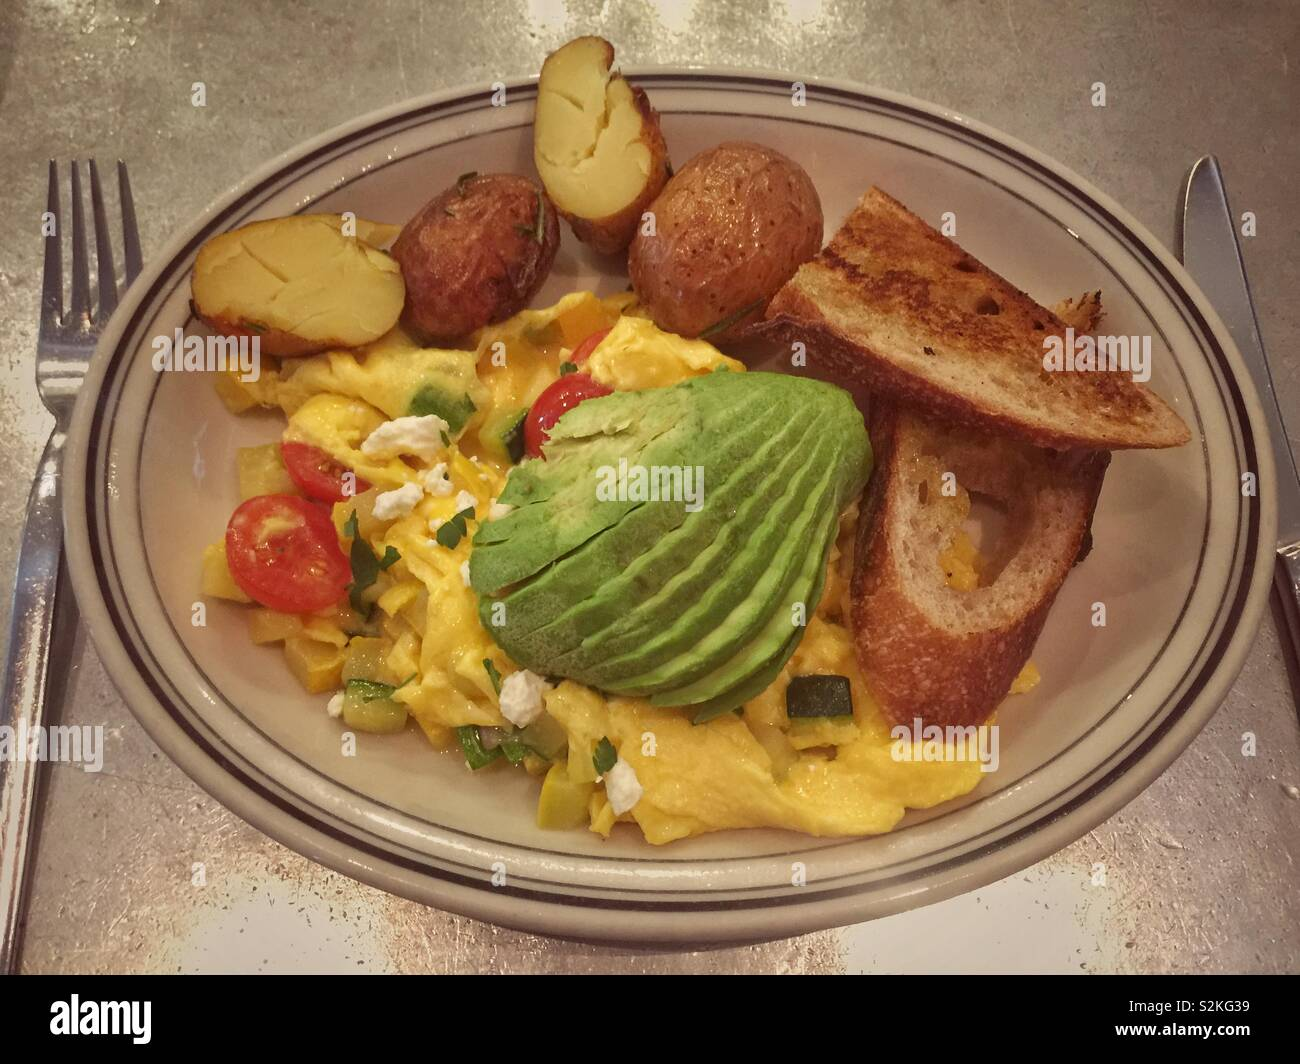 Plate of vegetables scramble eggs with avocado, fried potatoes and toasted bread - Stock Image